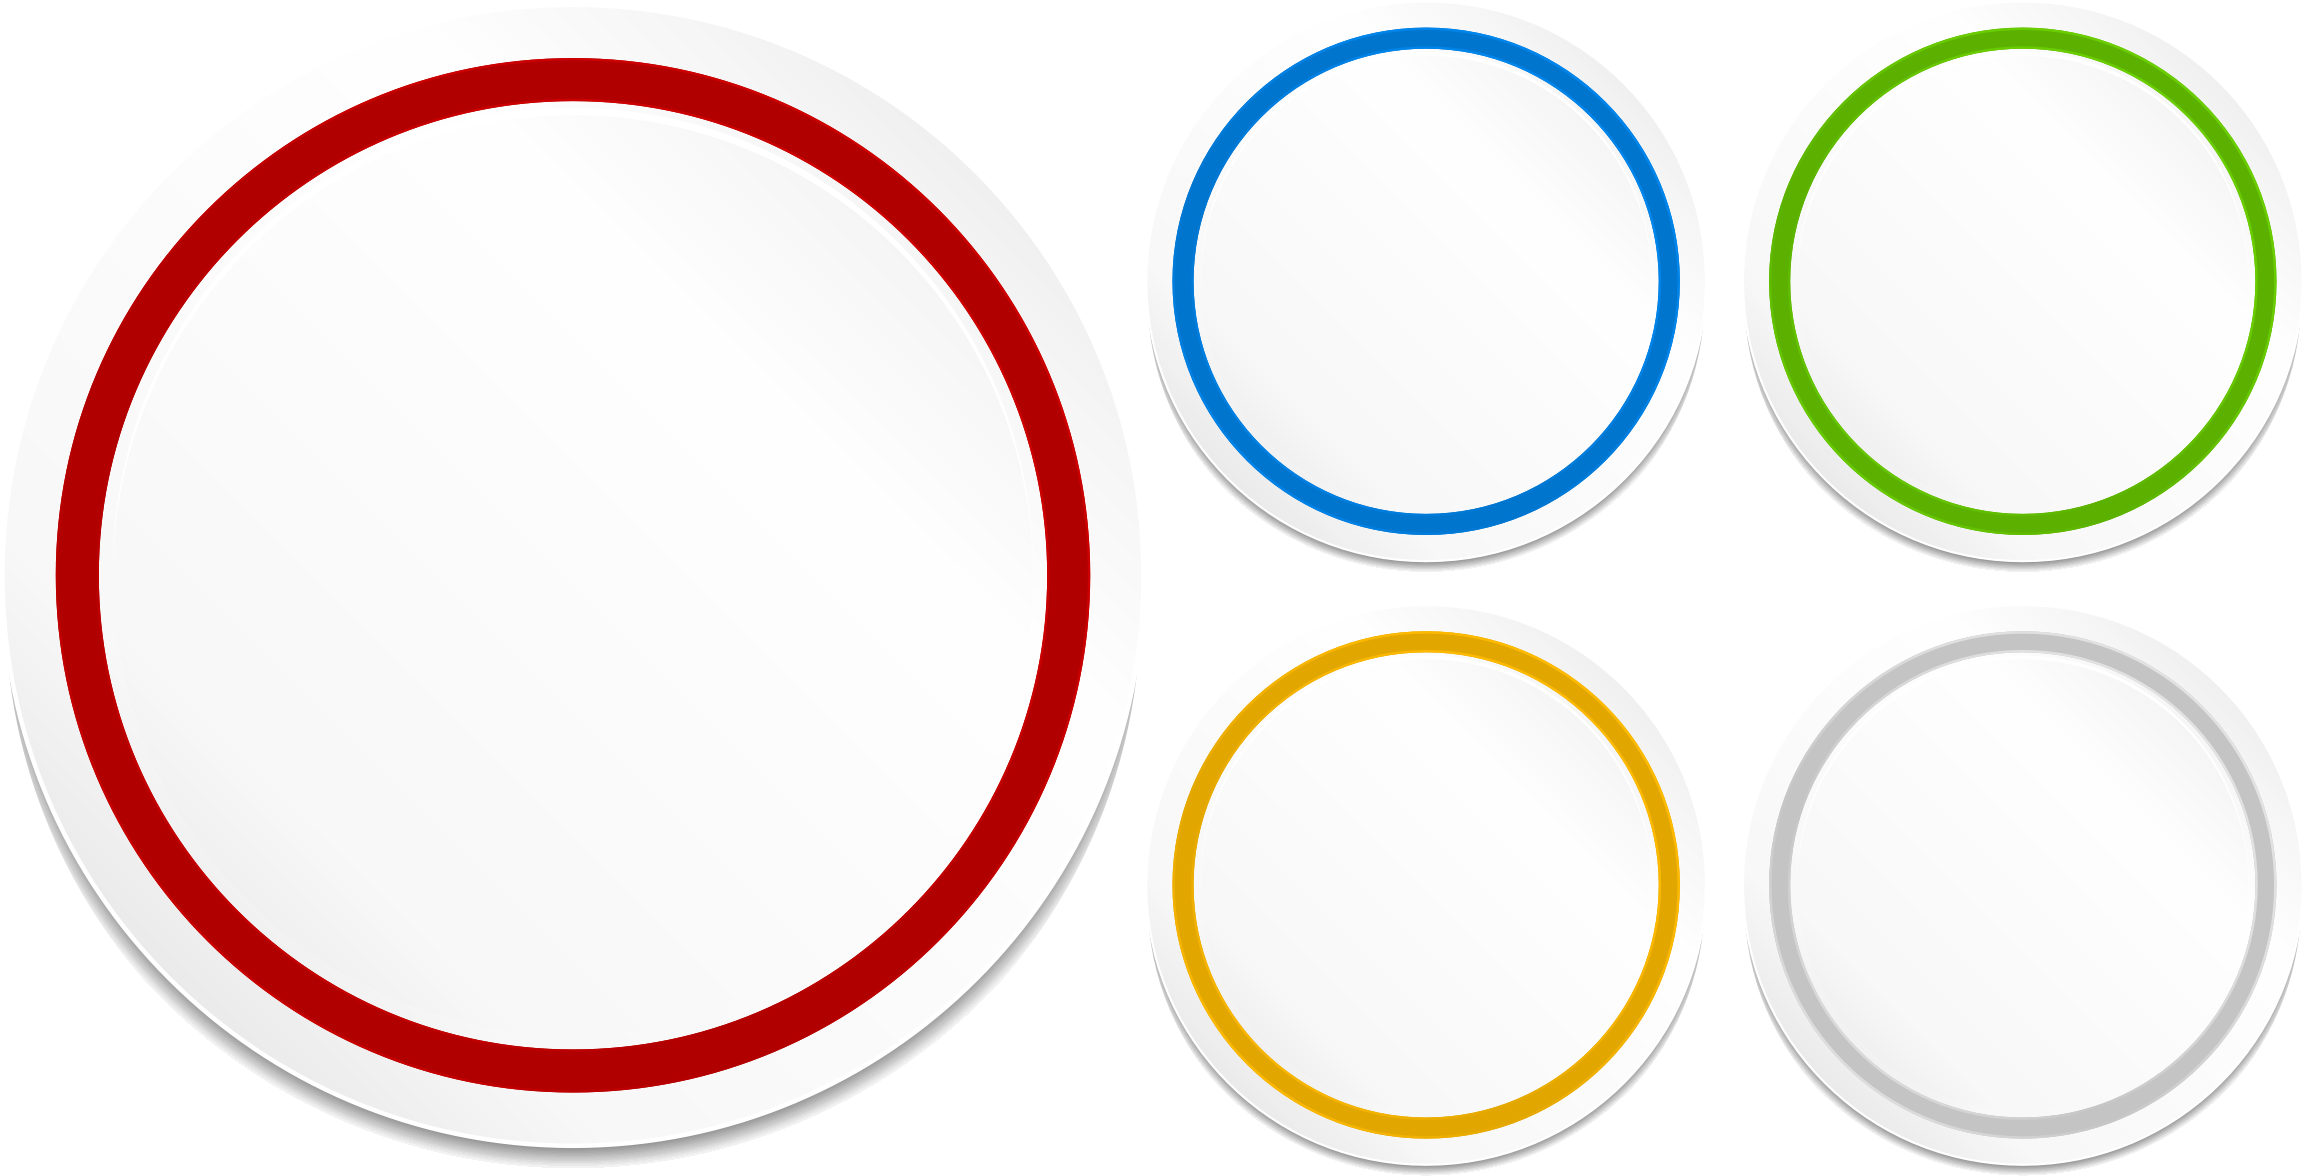 Vector Circle Png at GetDrawings com   Free for personal use